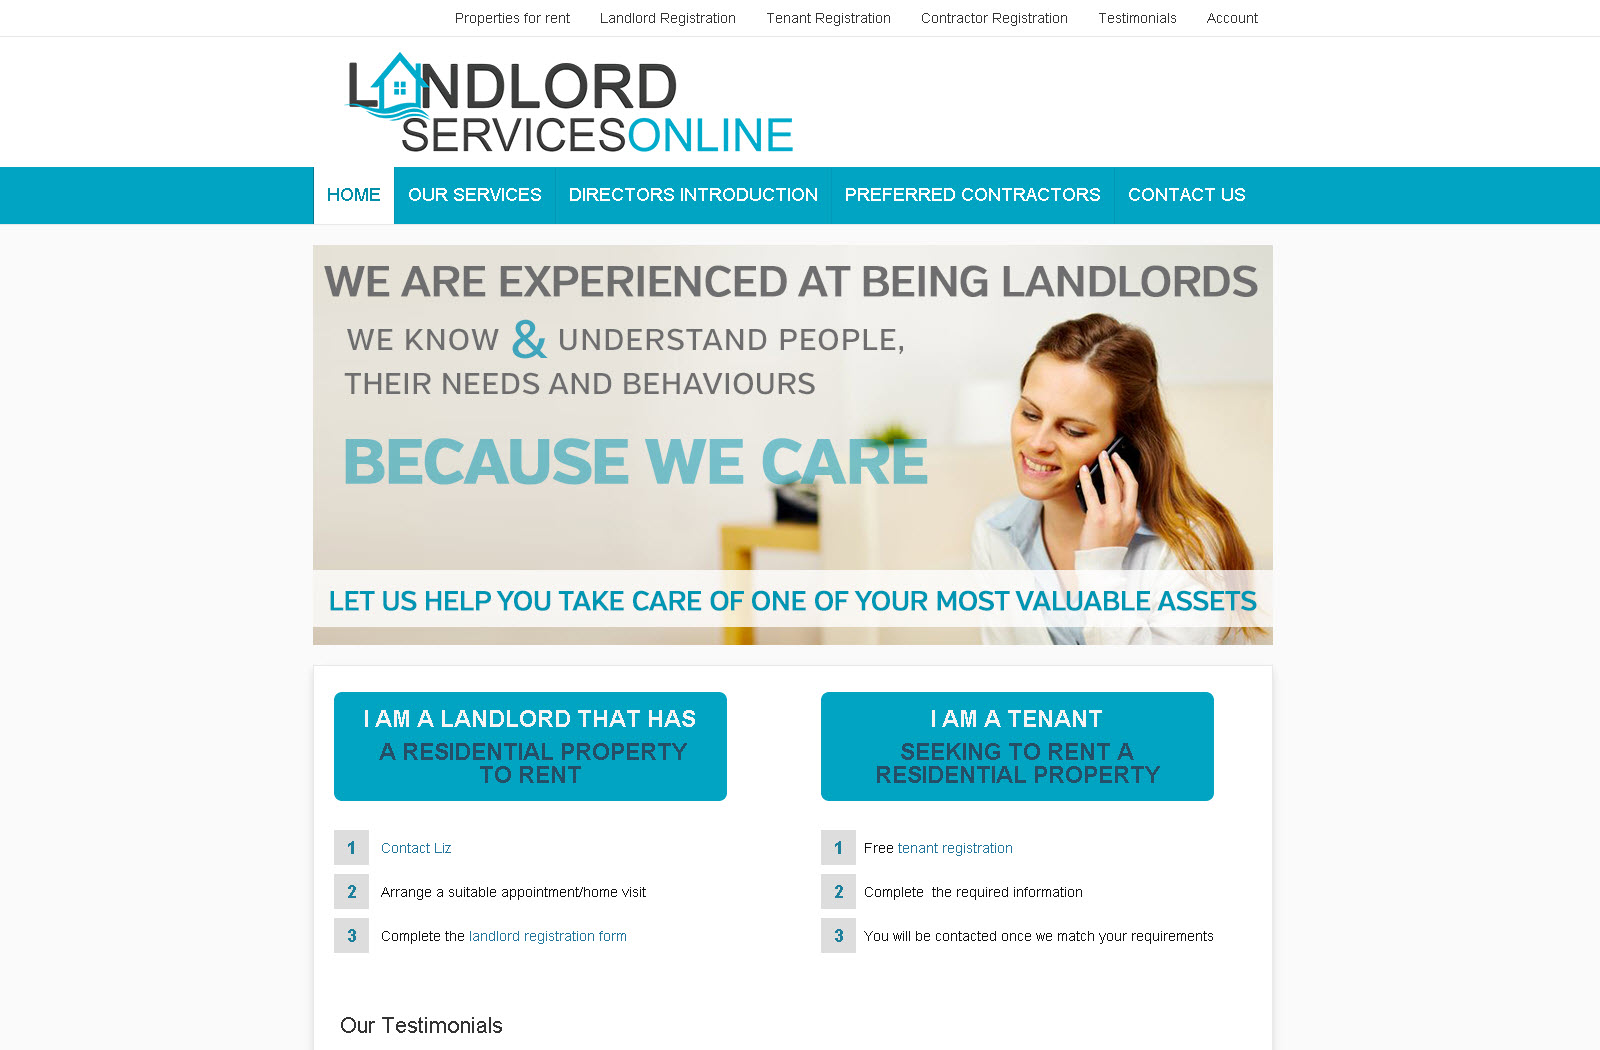 Landlord Services Online